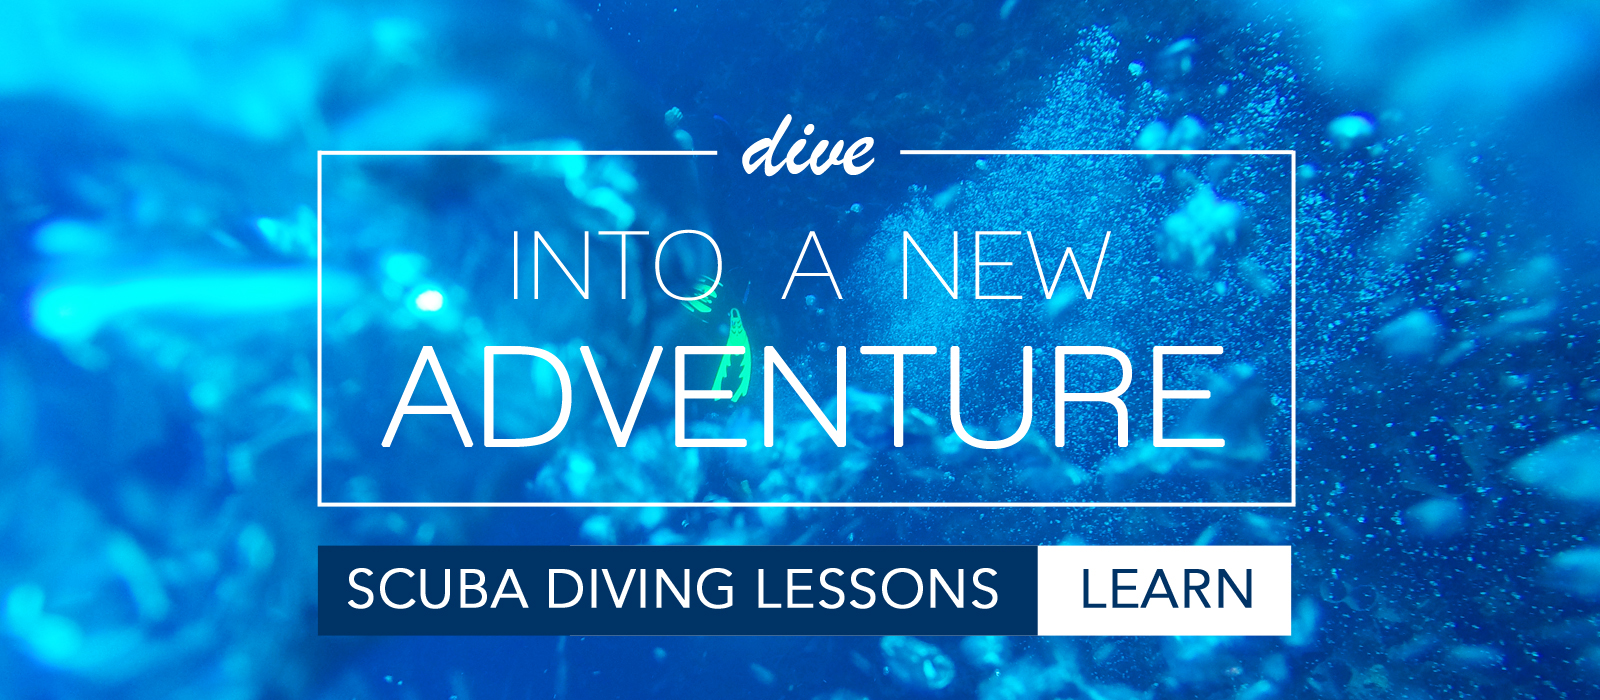 Neptune scuba diving lessons and certification nashville tennessee scuba lessons with neptune padi certification mdea certification xflitez Gallery